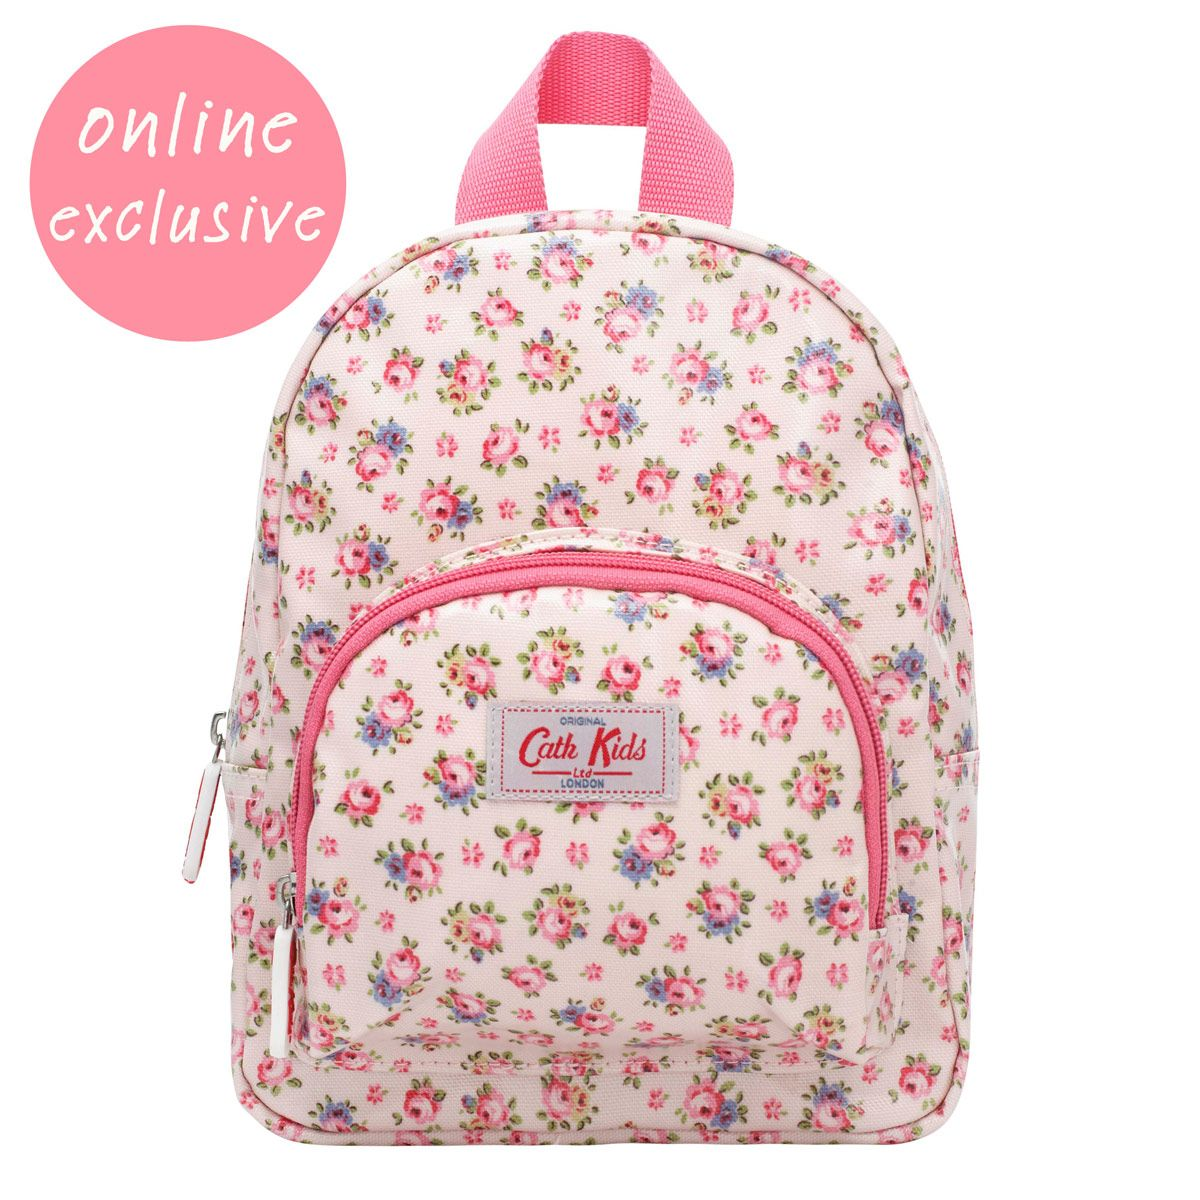 Cath Kidston Toddler Back Pack - Travelling with Kids - Childrens ...